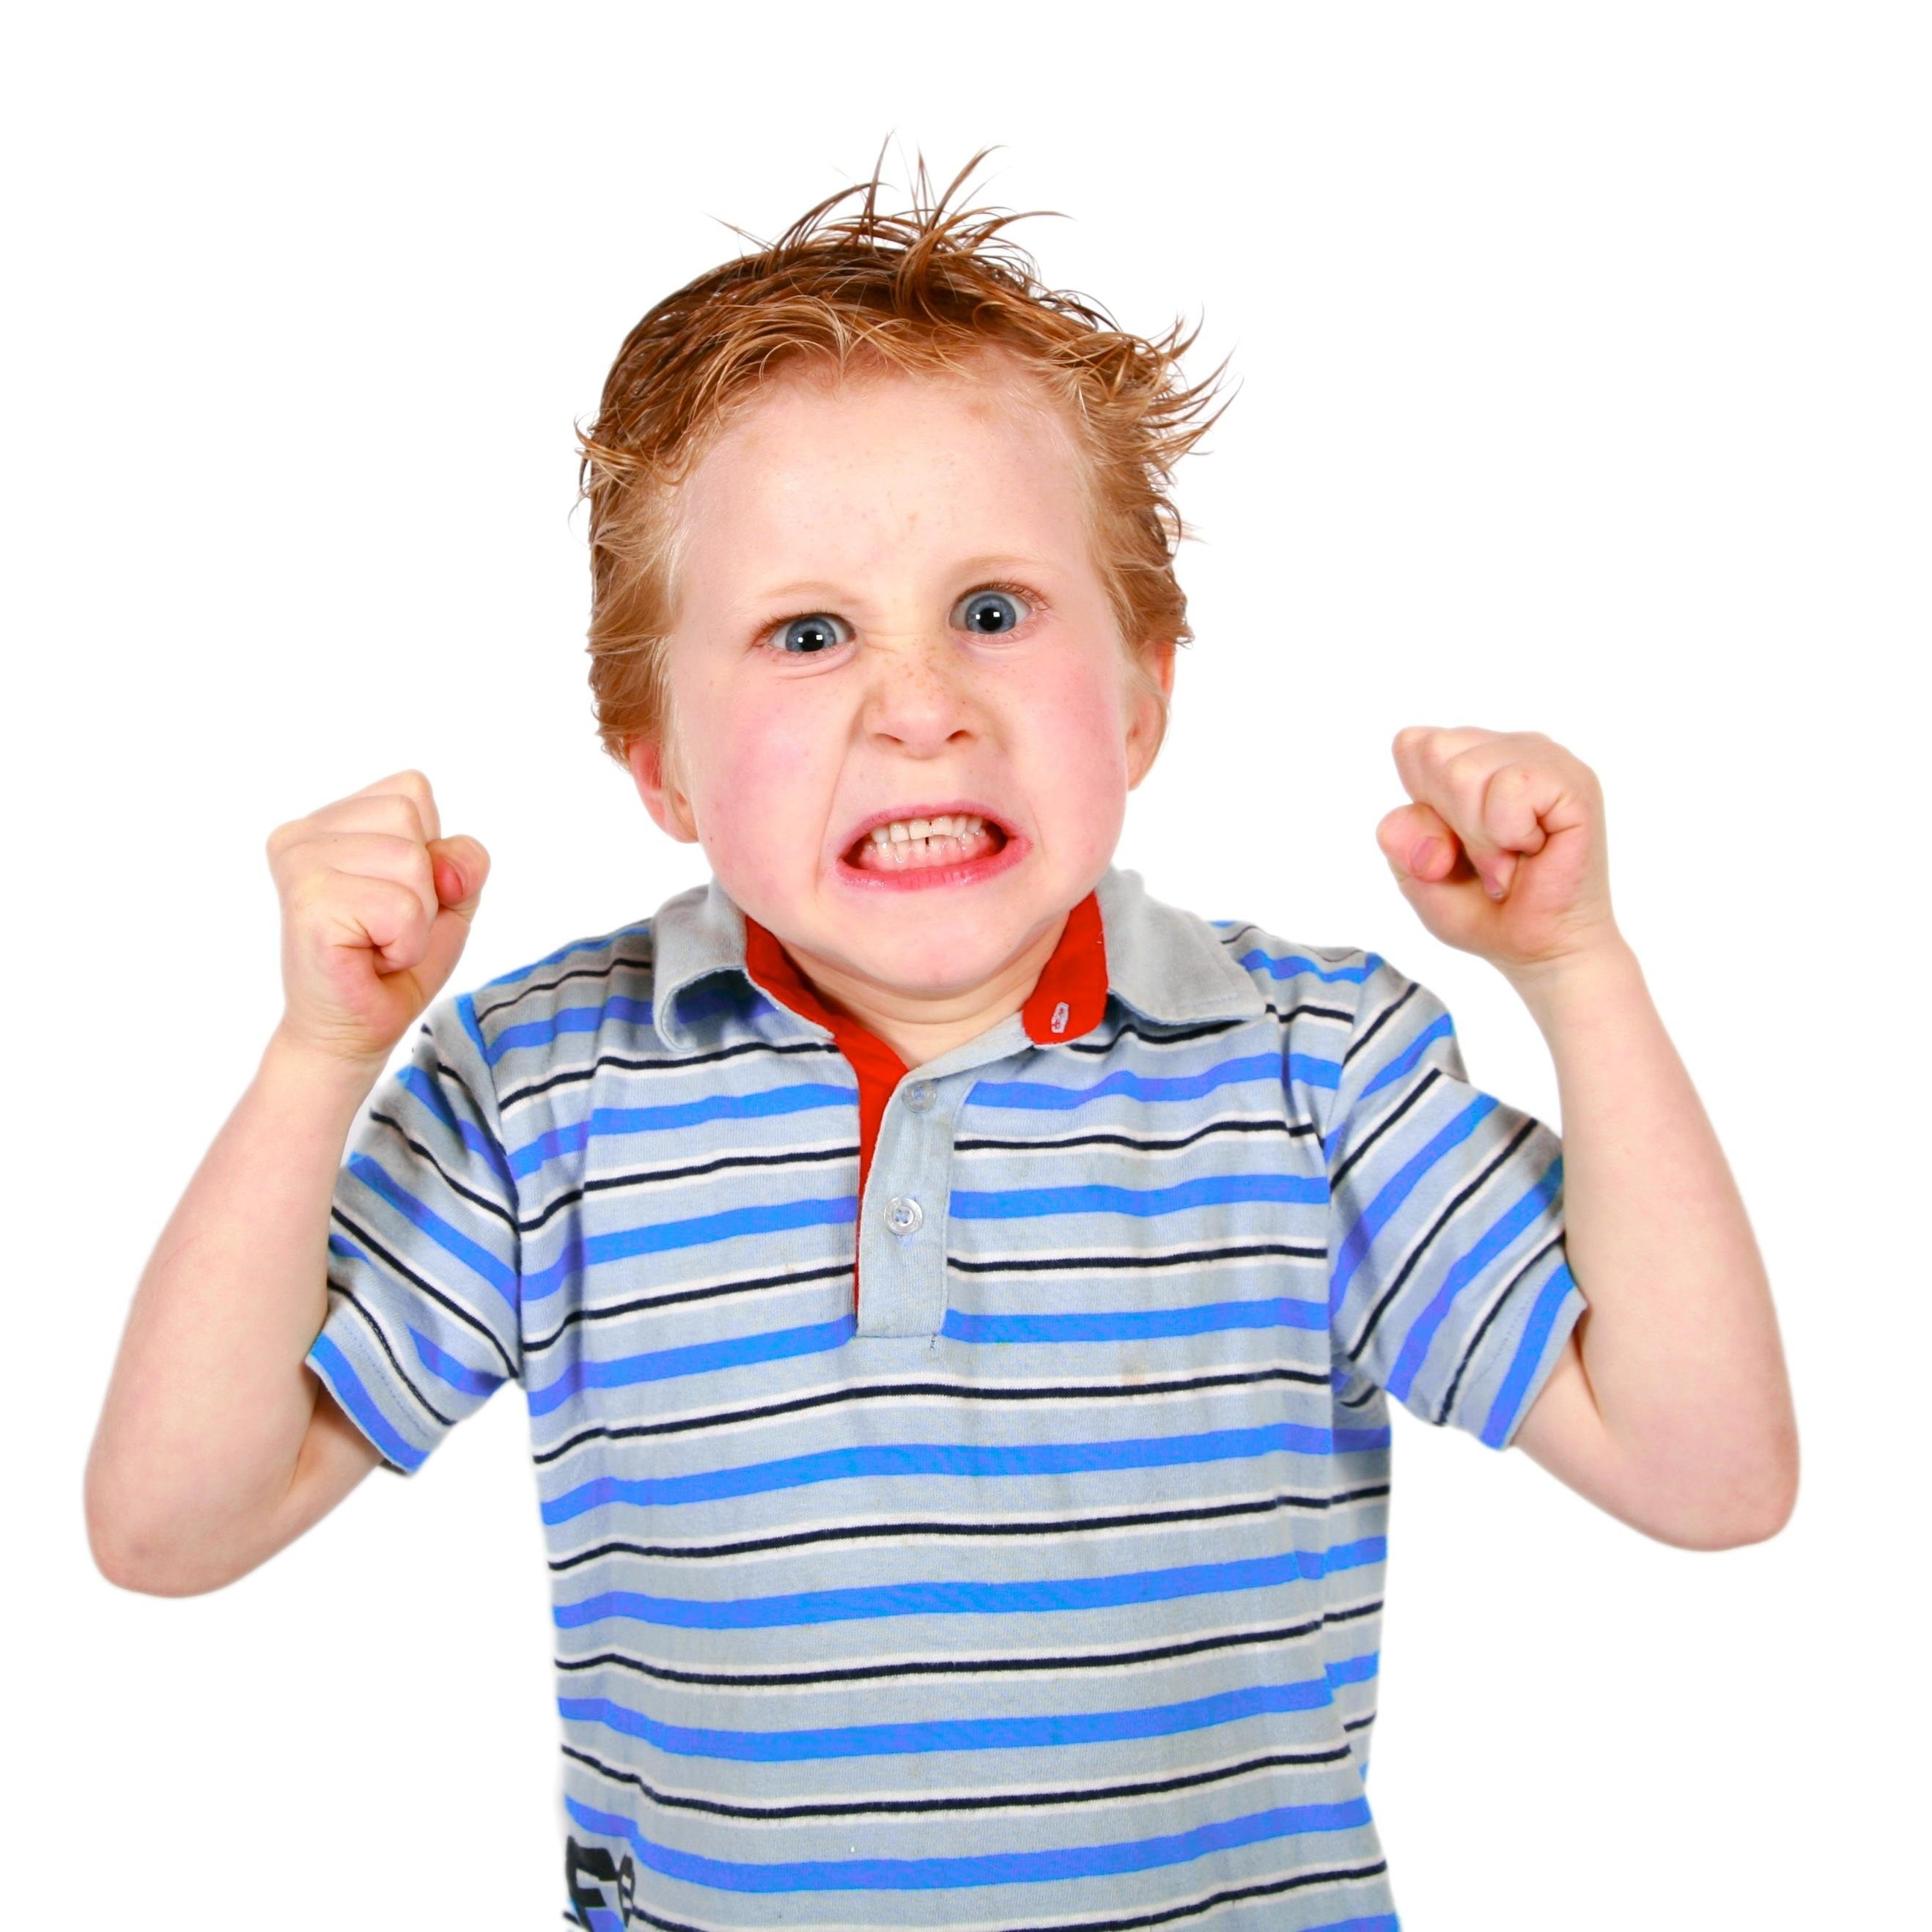 Angry Kid Png, png collections at sccpre.cat.